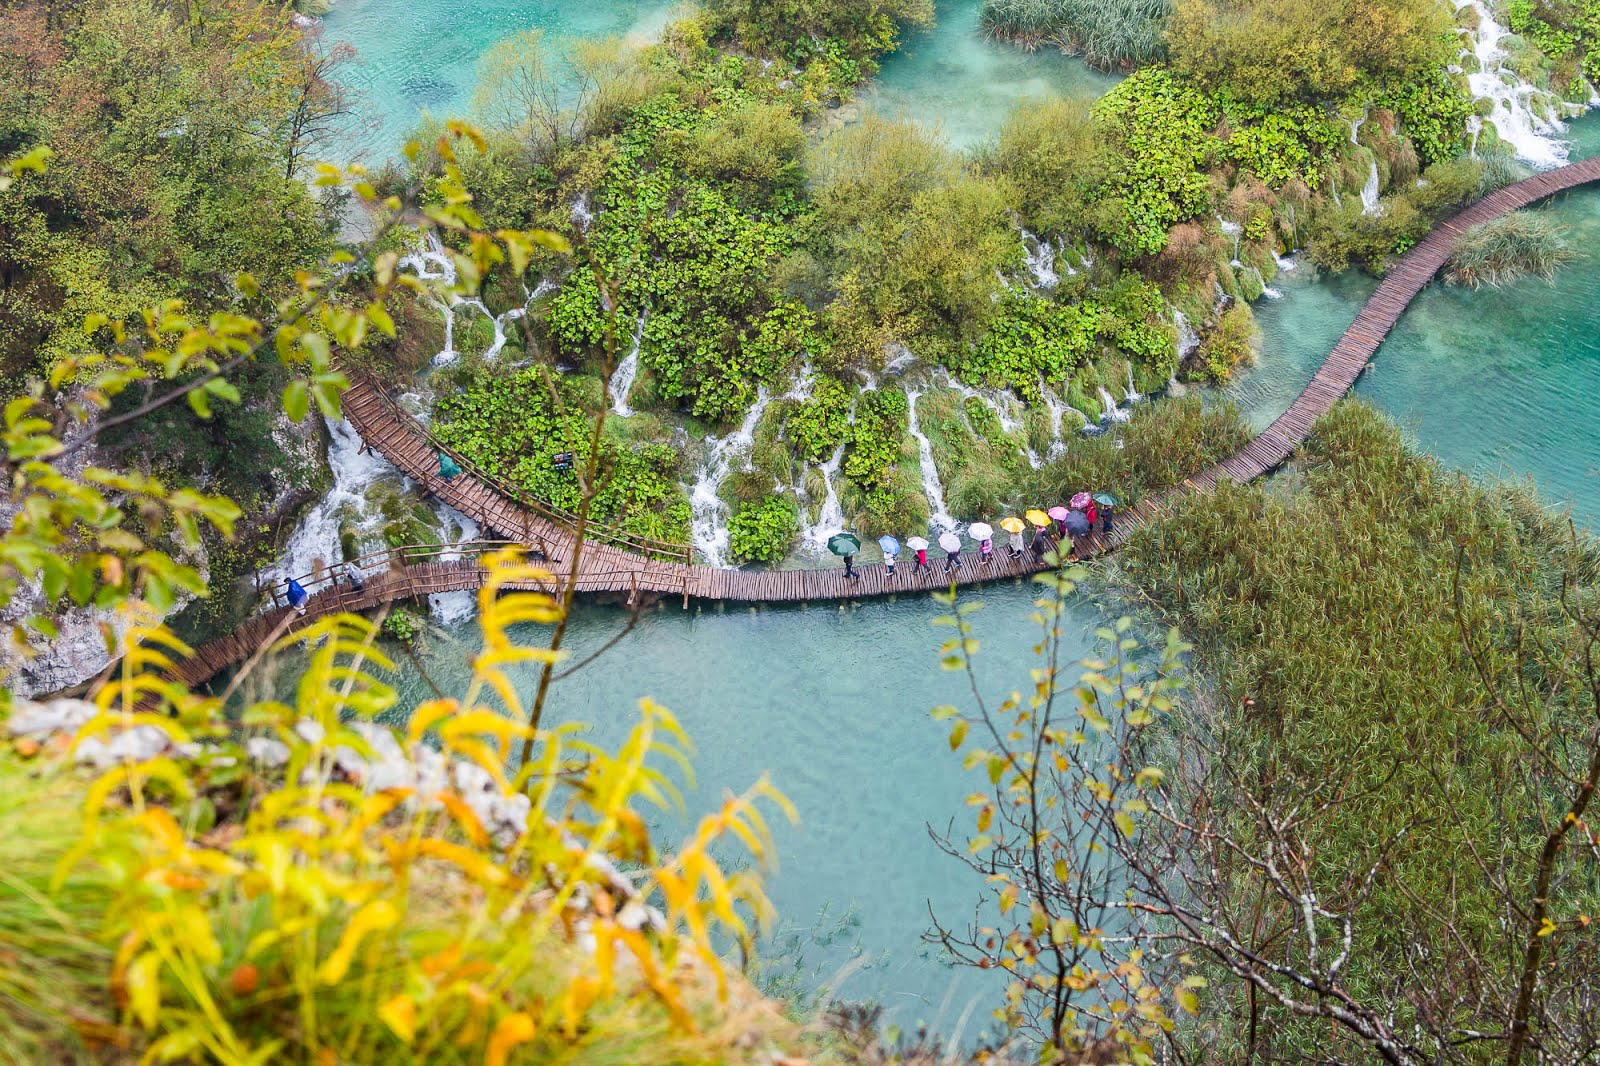 Parc National Plitvice